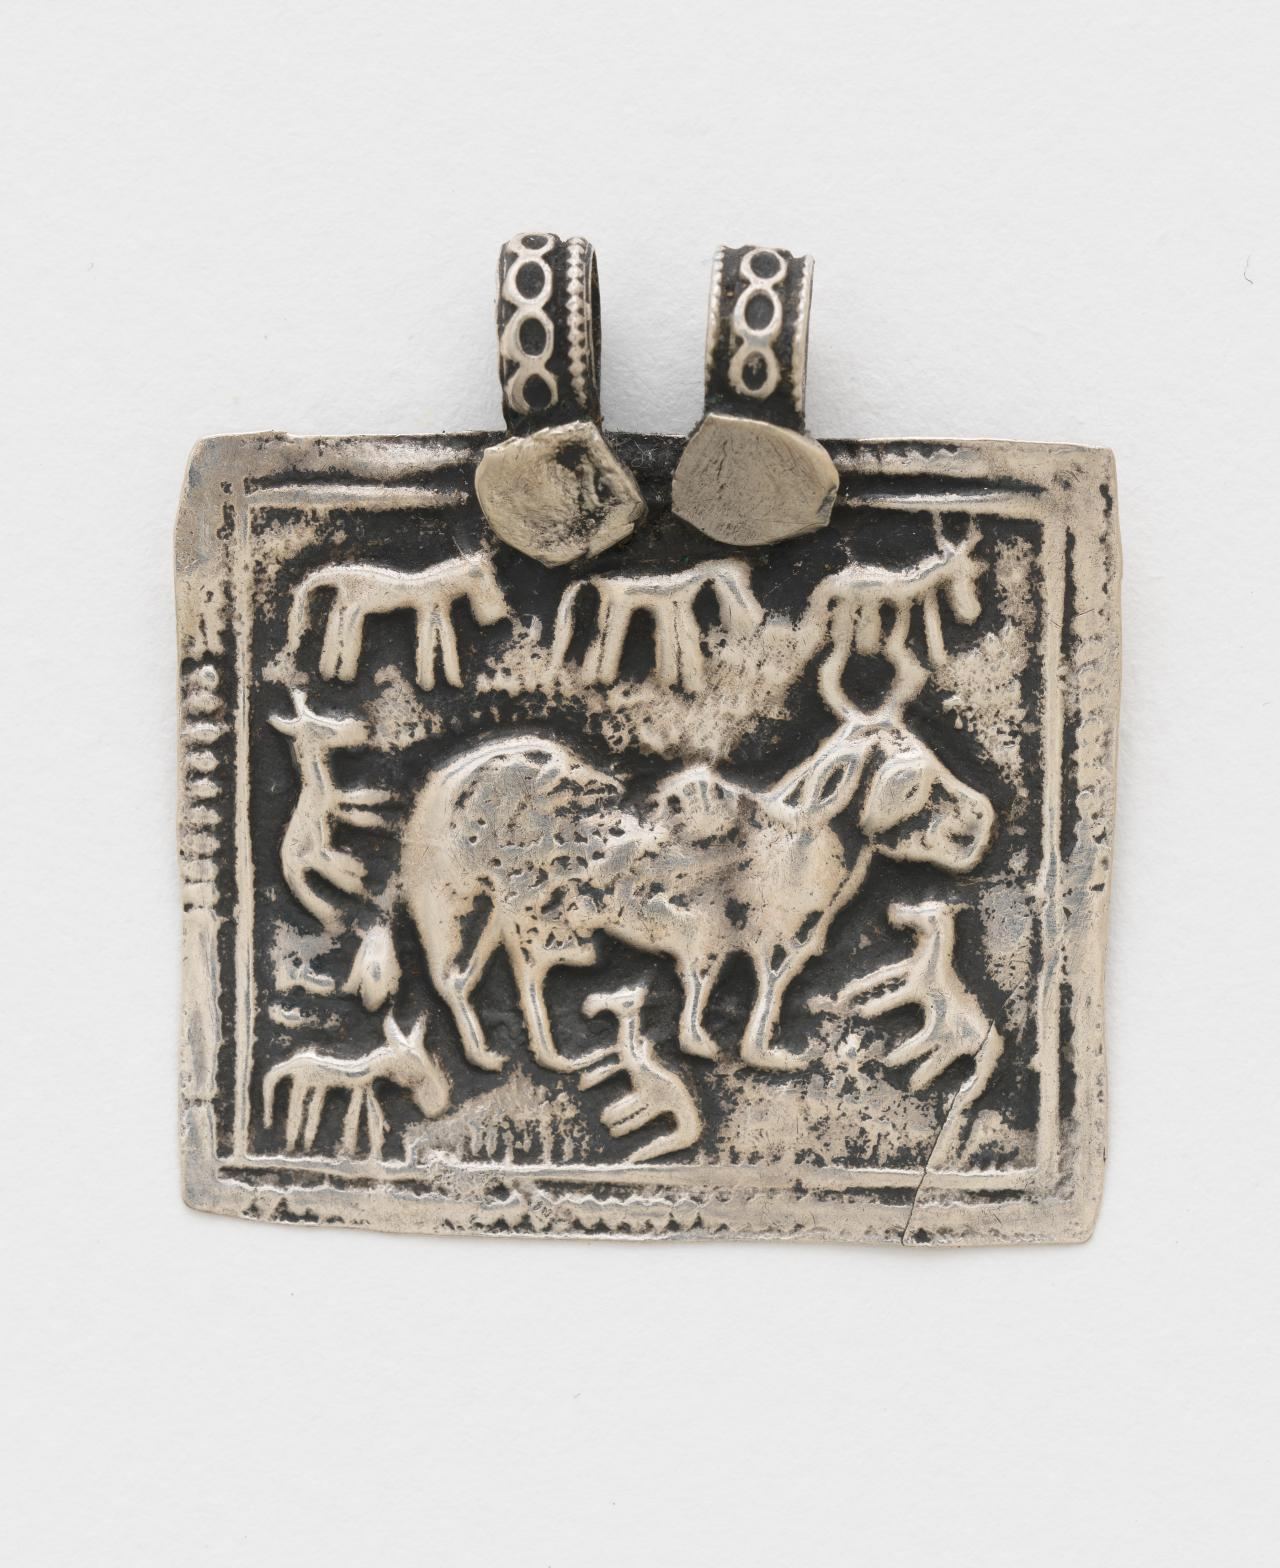 Pilgrimage and devotional pendant (Phul) with cow and calves